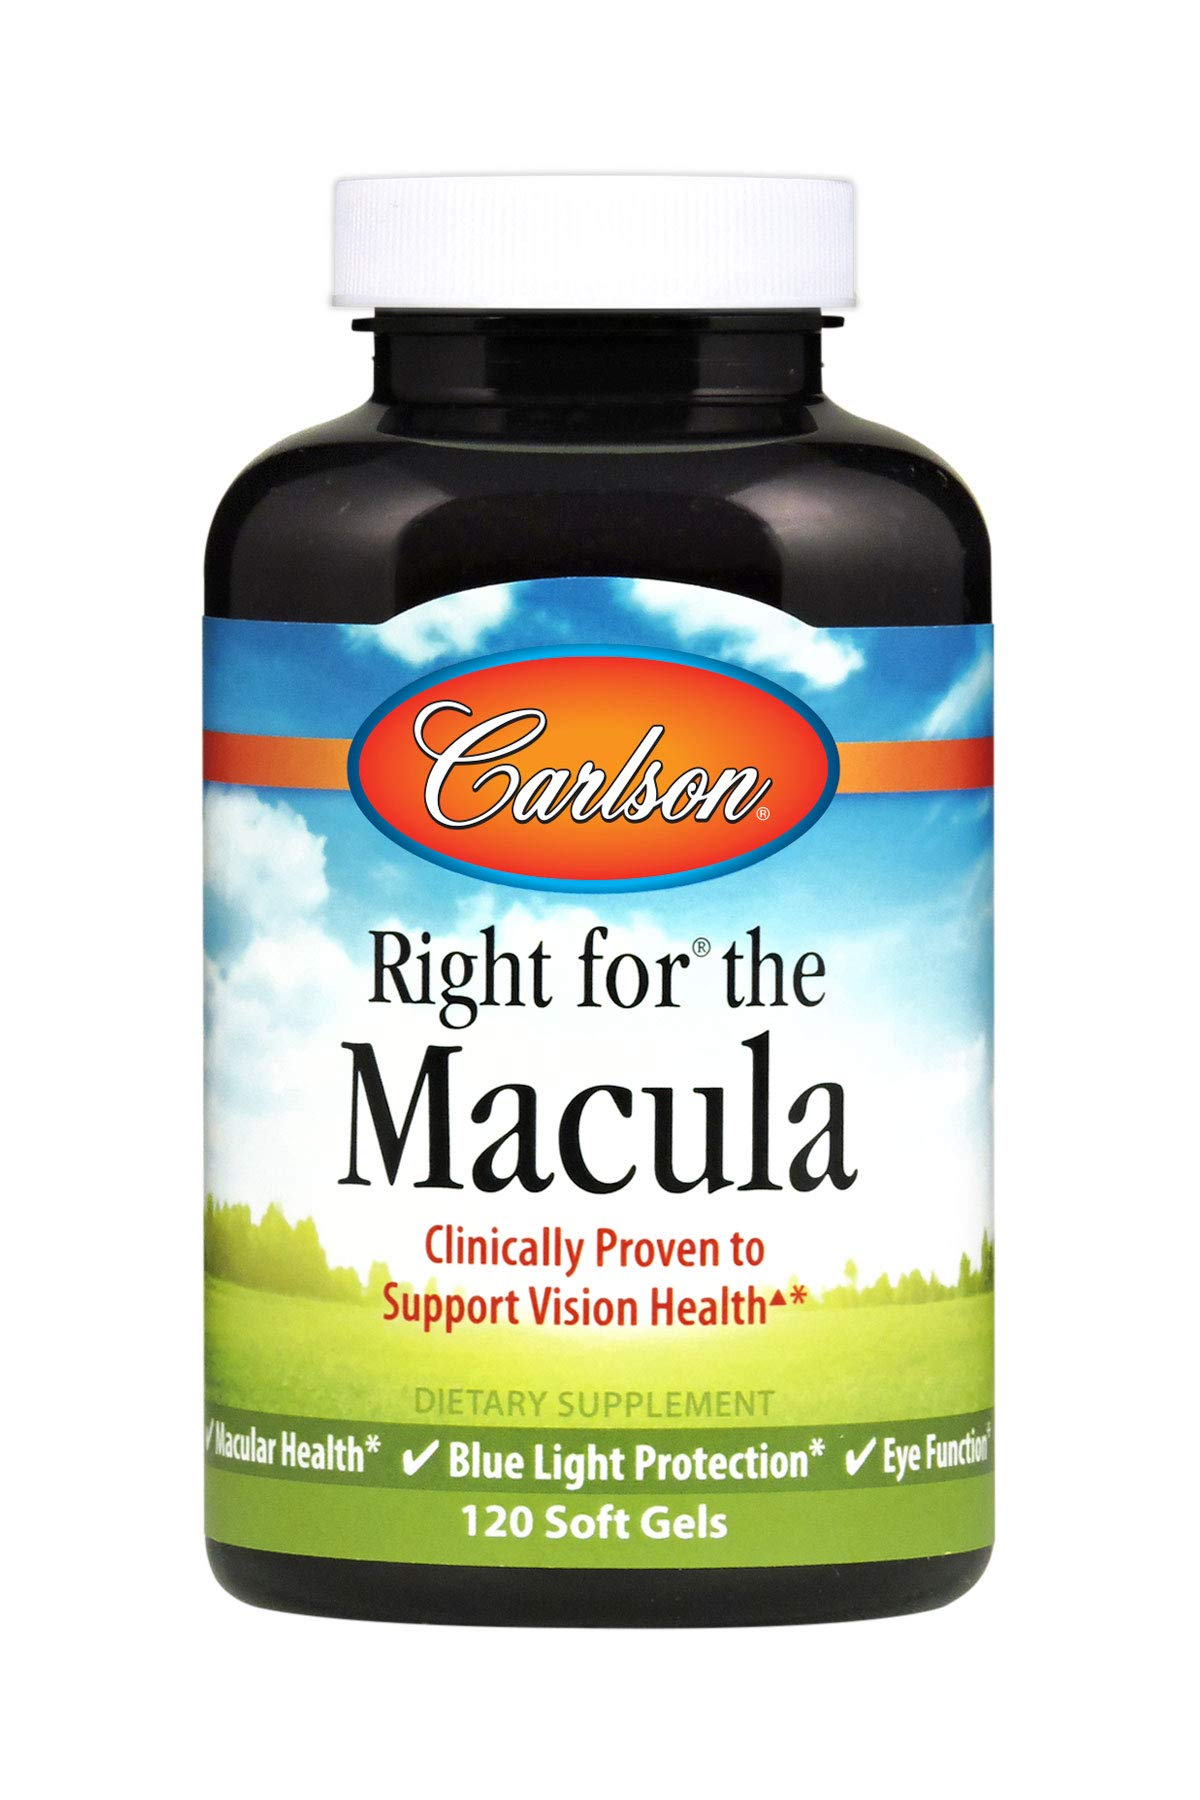 Carlson - Right for Macula, Clinically Proven to Support Vision Health, Macular Health, Blue Light Protection & Eye Function, 120 soft gels